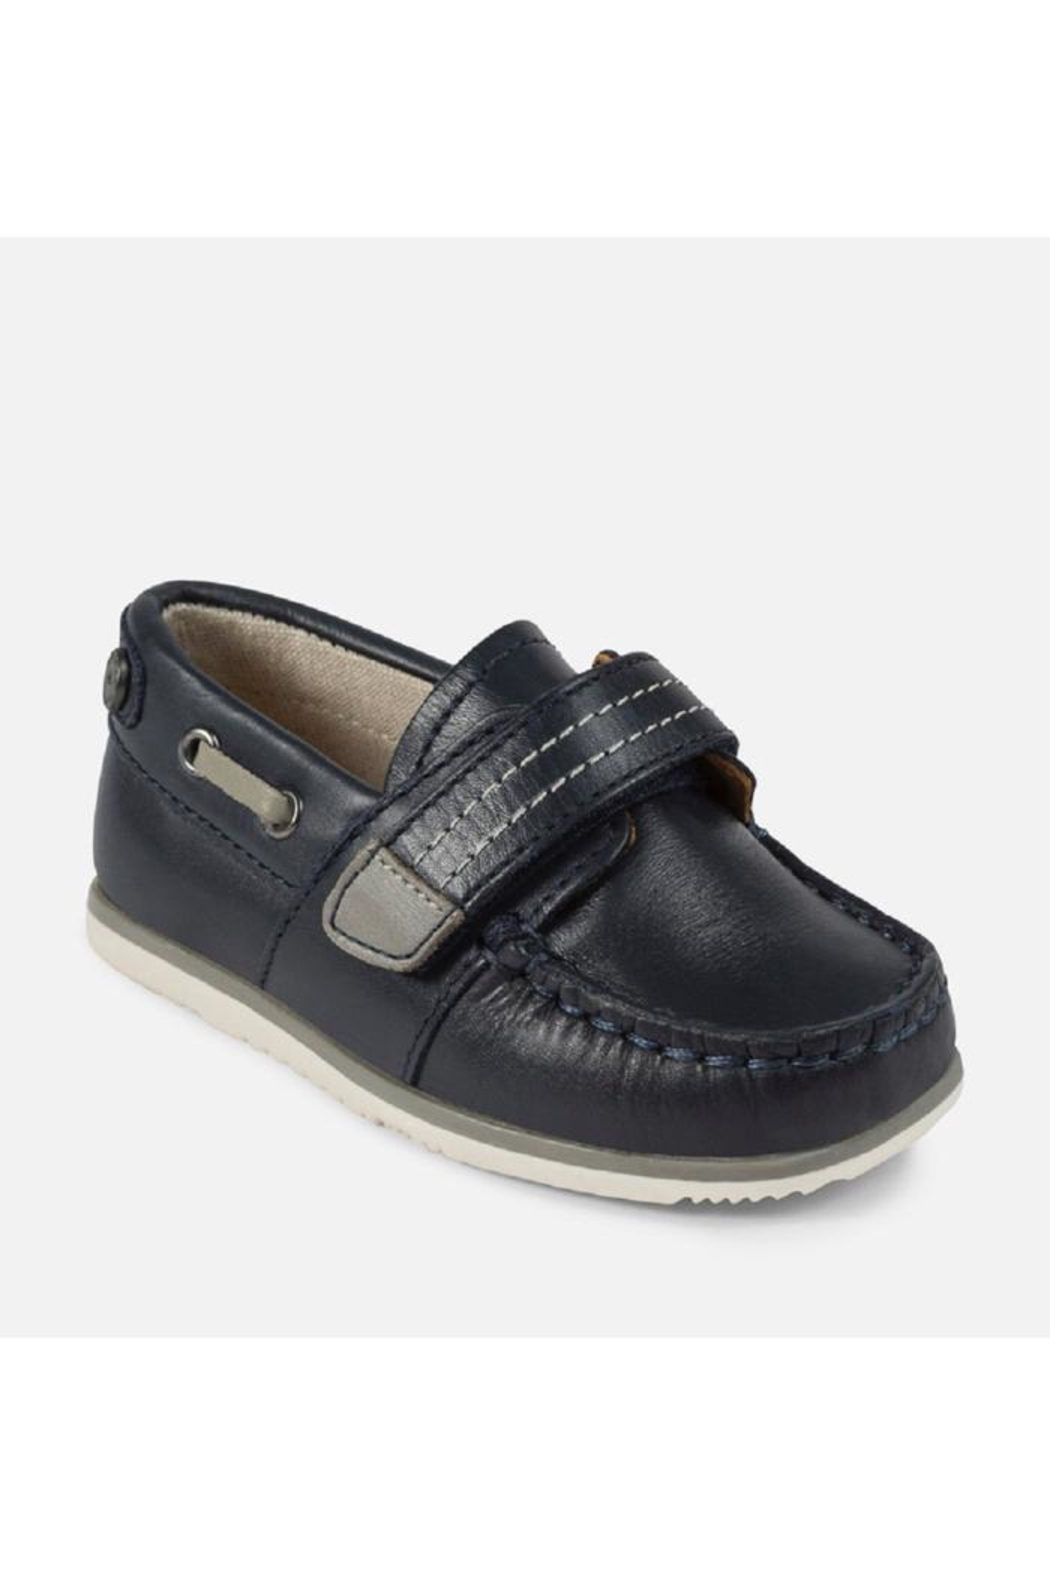 Mayoral Navy Leather Loafer - Main Image